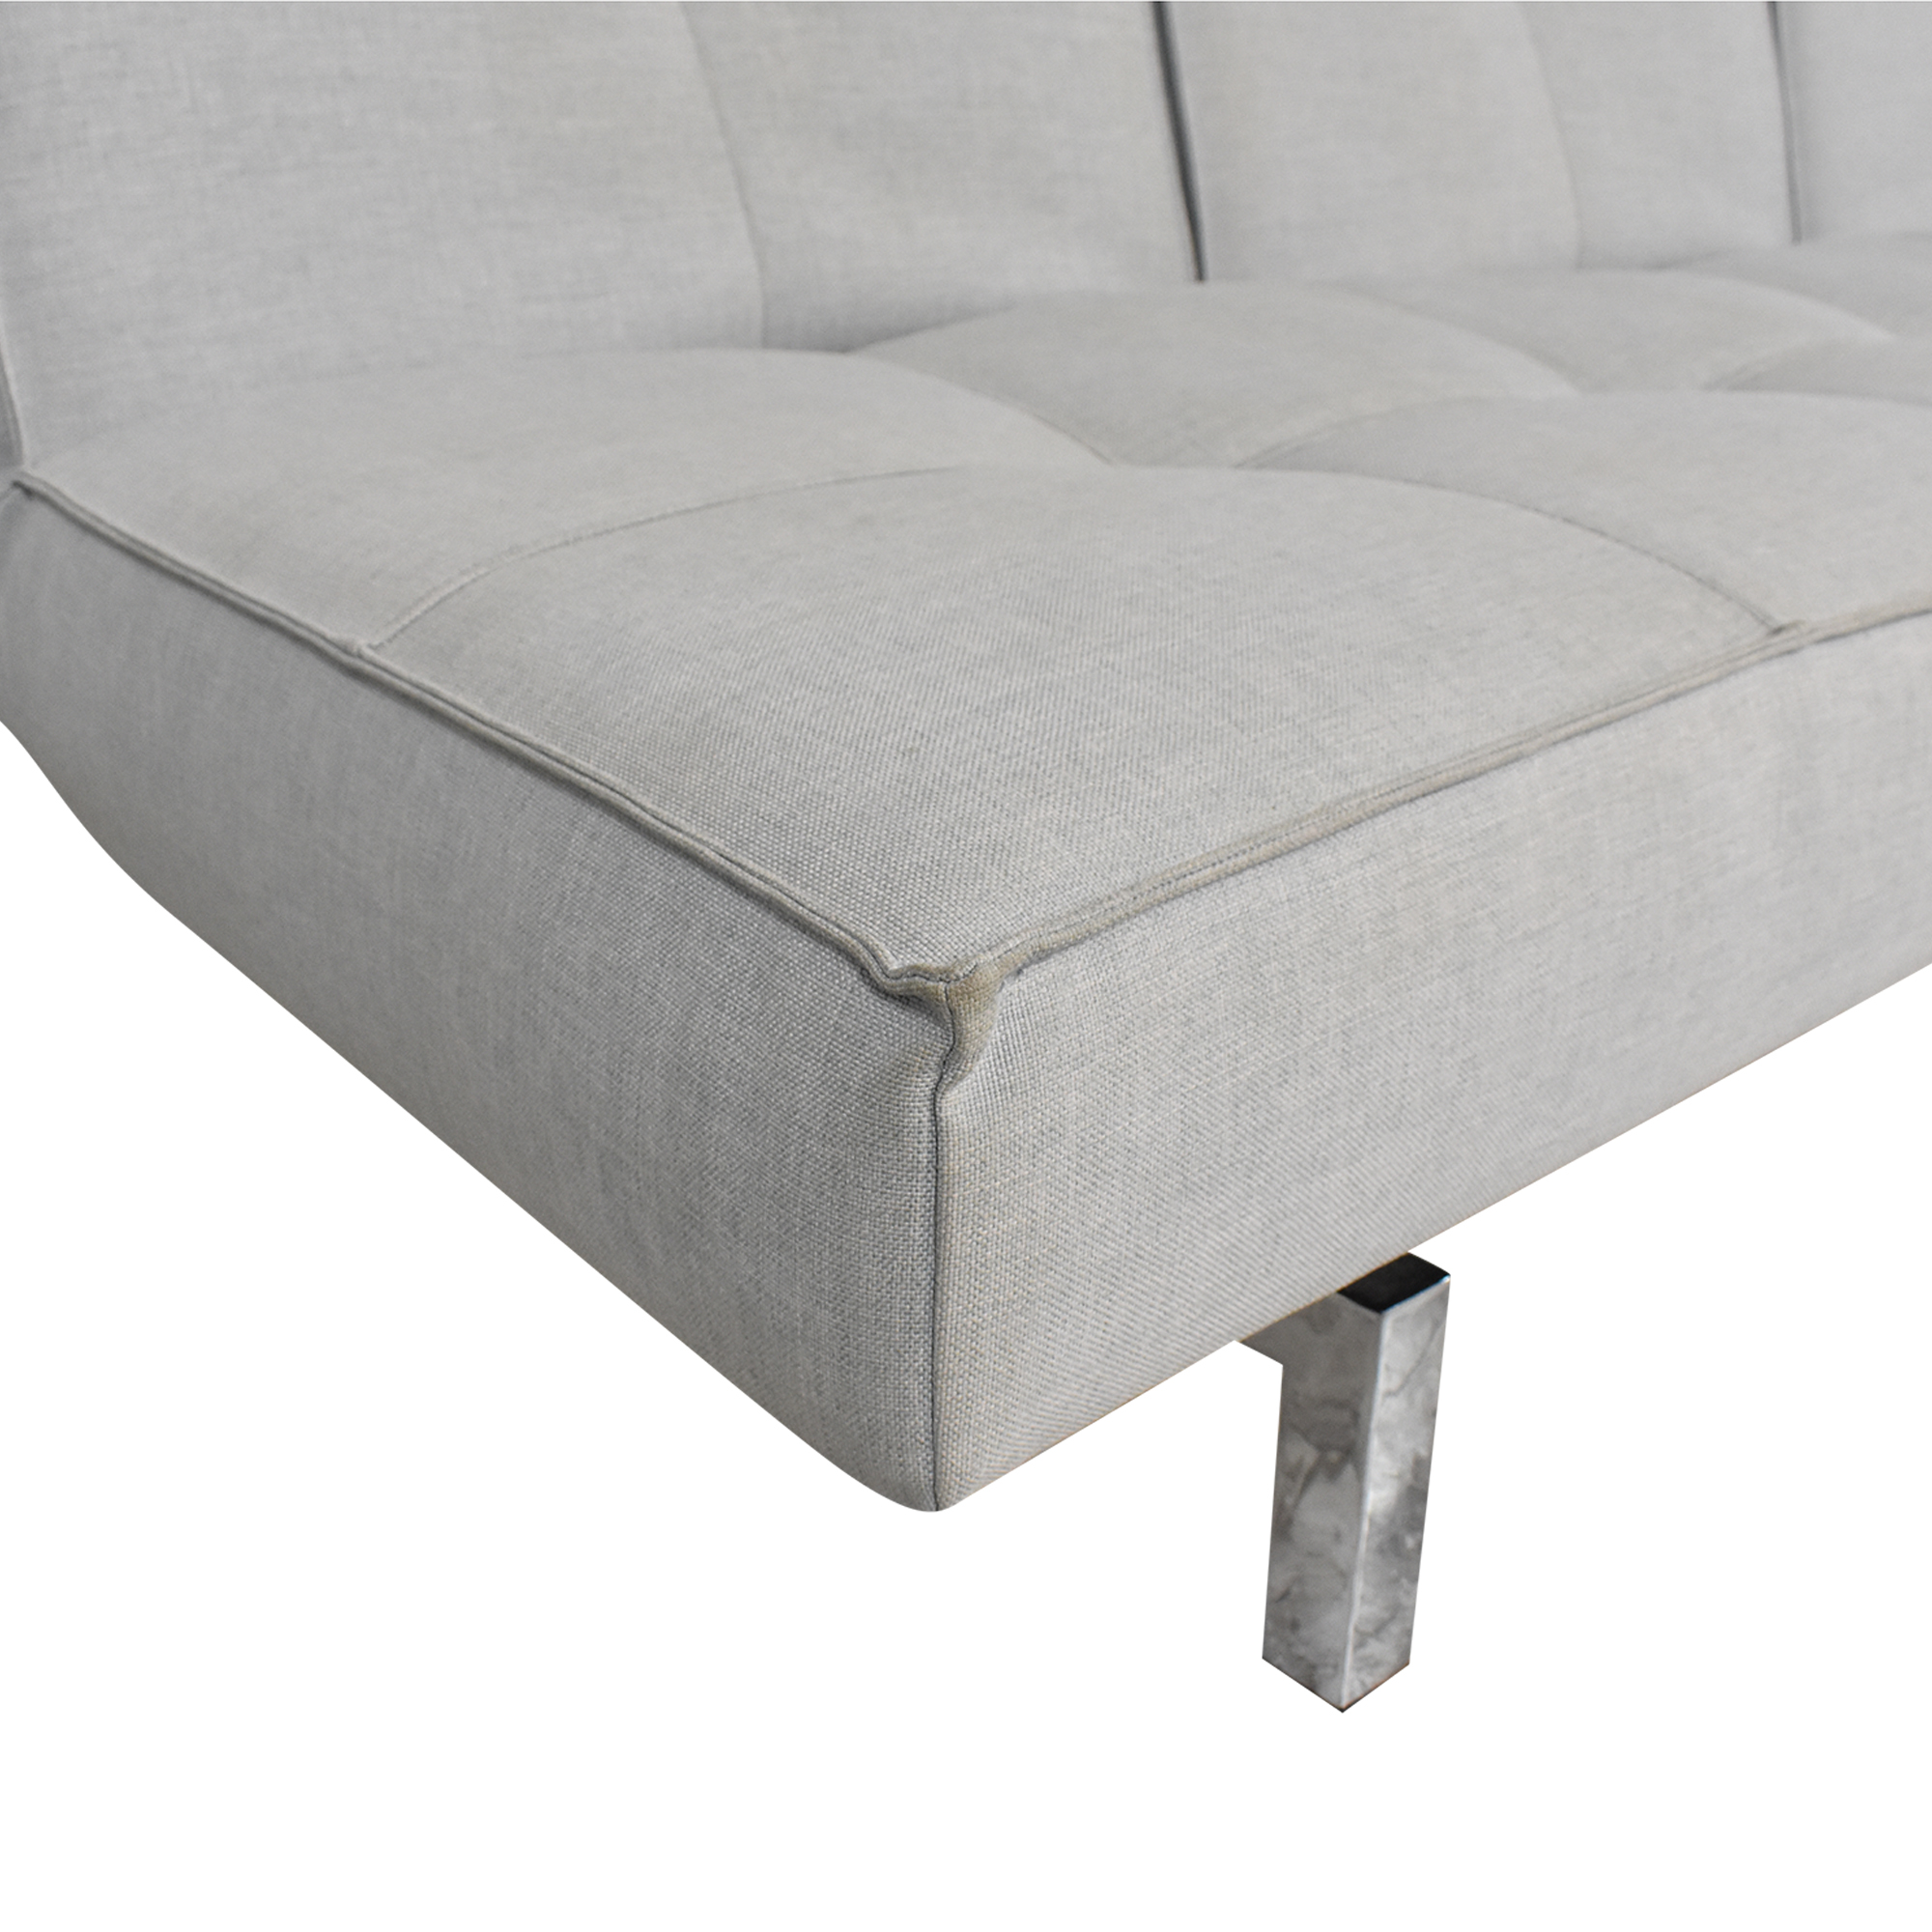 Innovation Living Innovation Living Convertible Tufted Sleeper Sofa pa